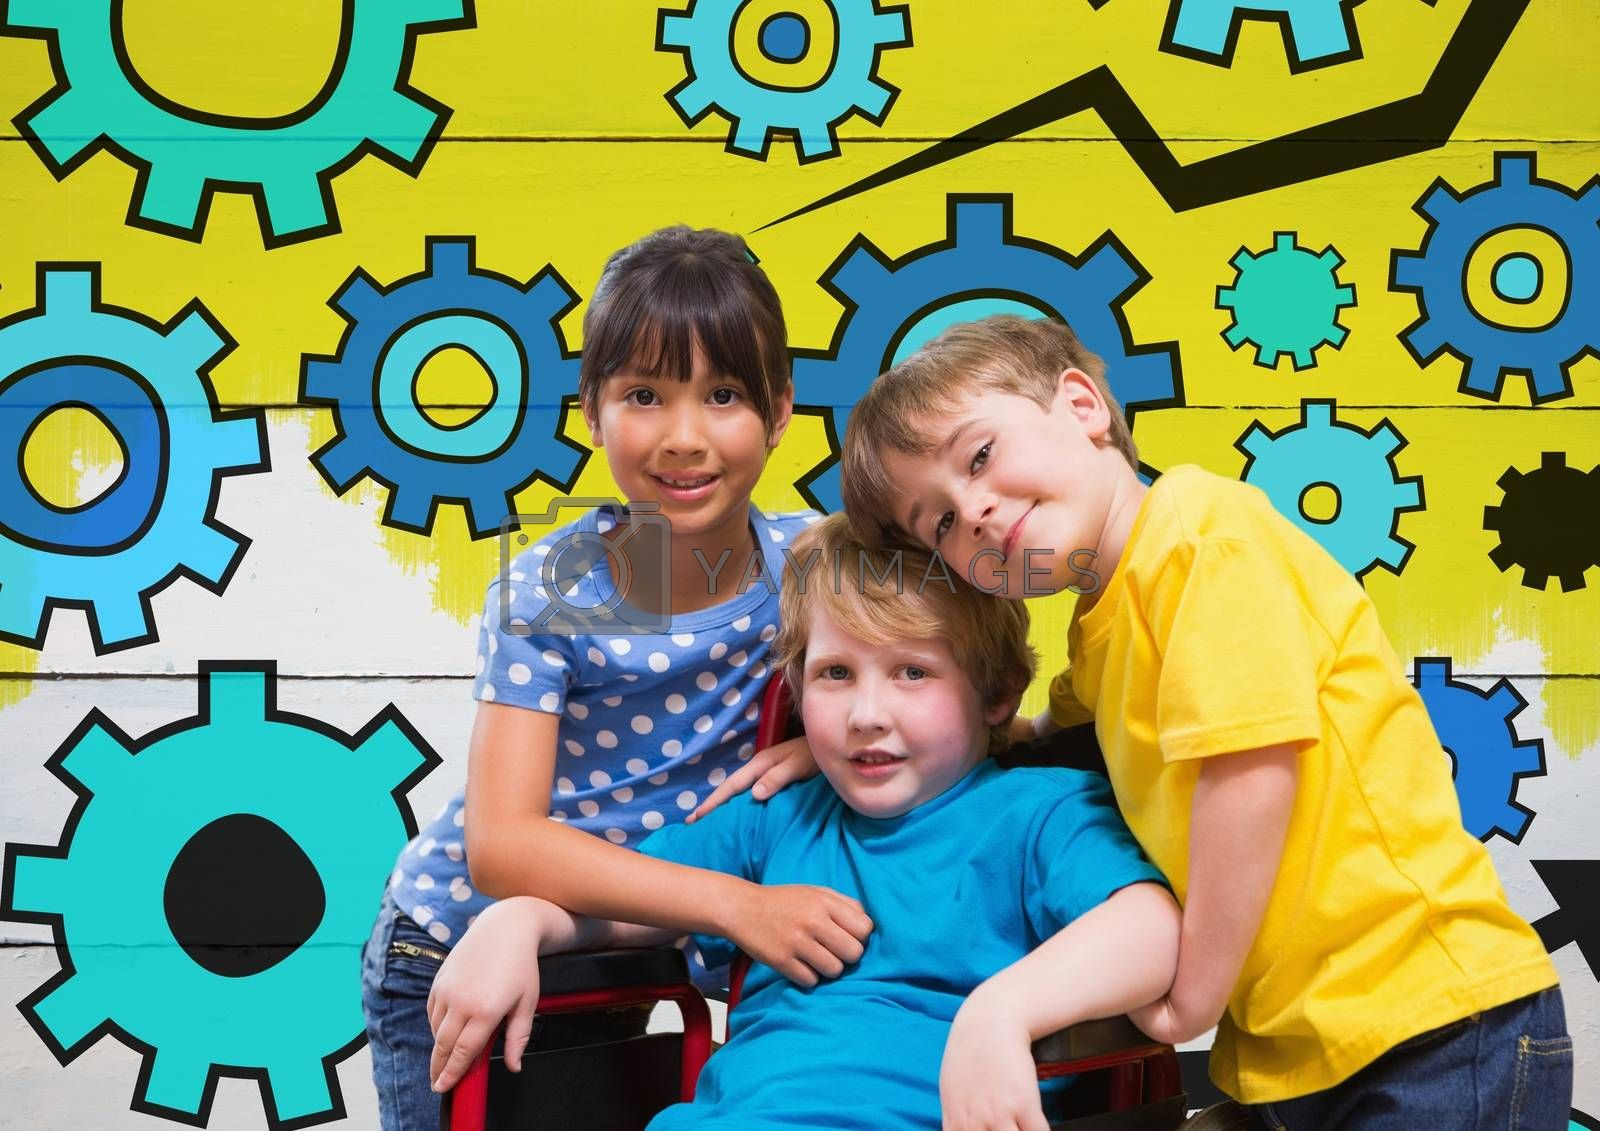 Disabled boy in wheelchair with friends and colorful settings cog gears by Wavebreakmedia